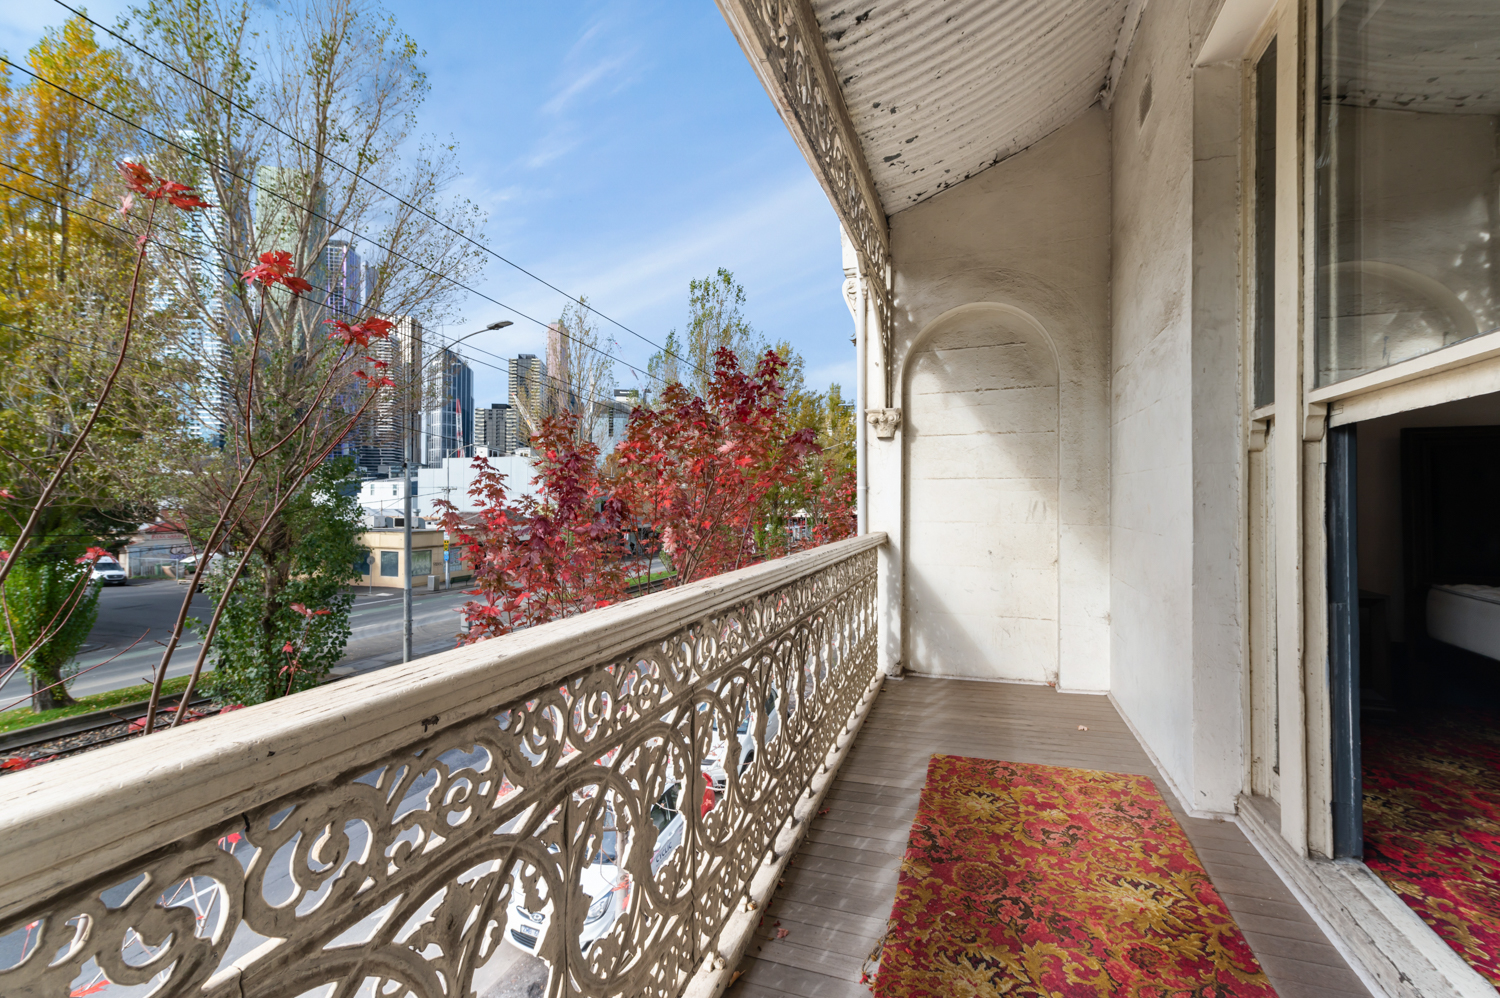 143-peel-street-north-melbourne-student-accommodation-Melbourne-Exterior-1-Unilodgers